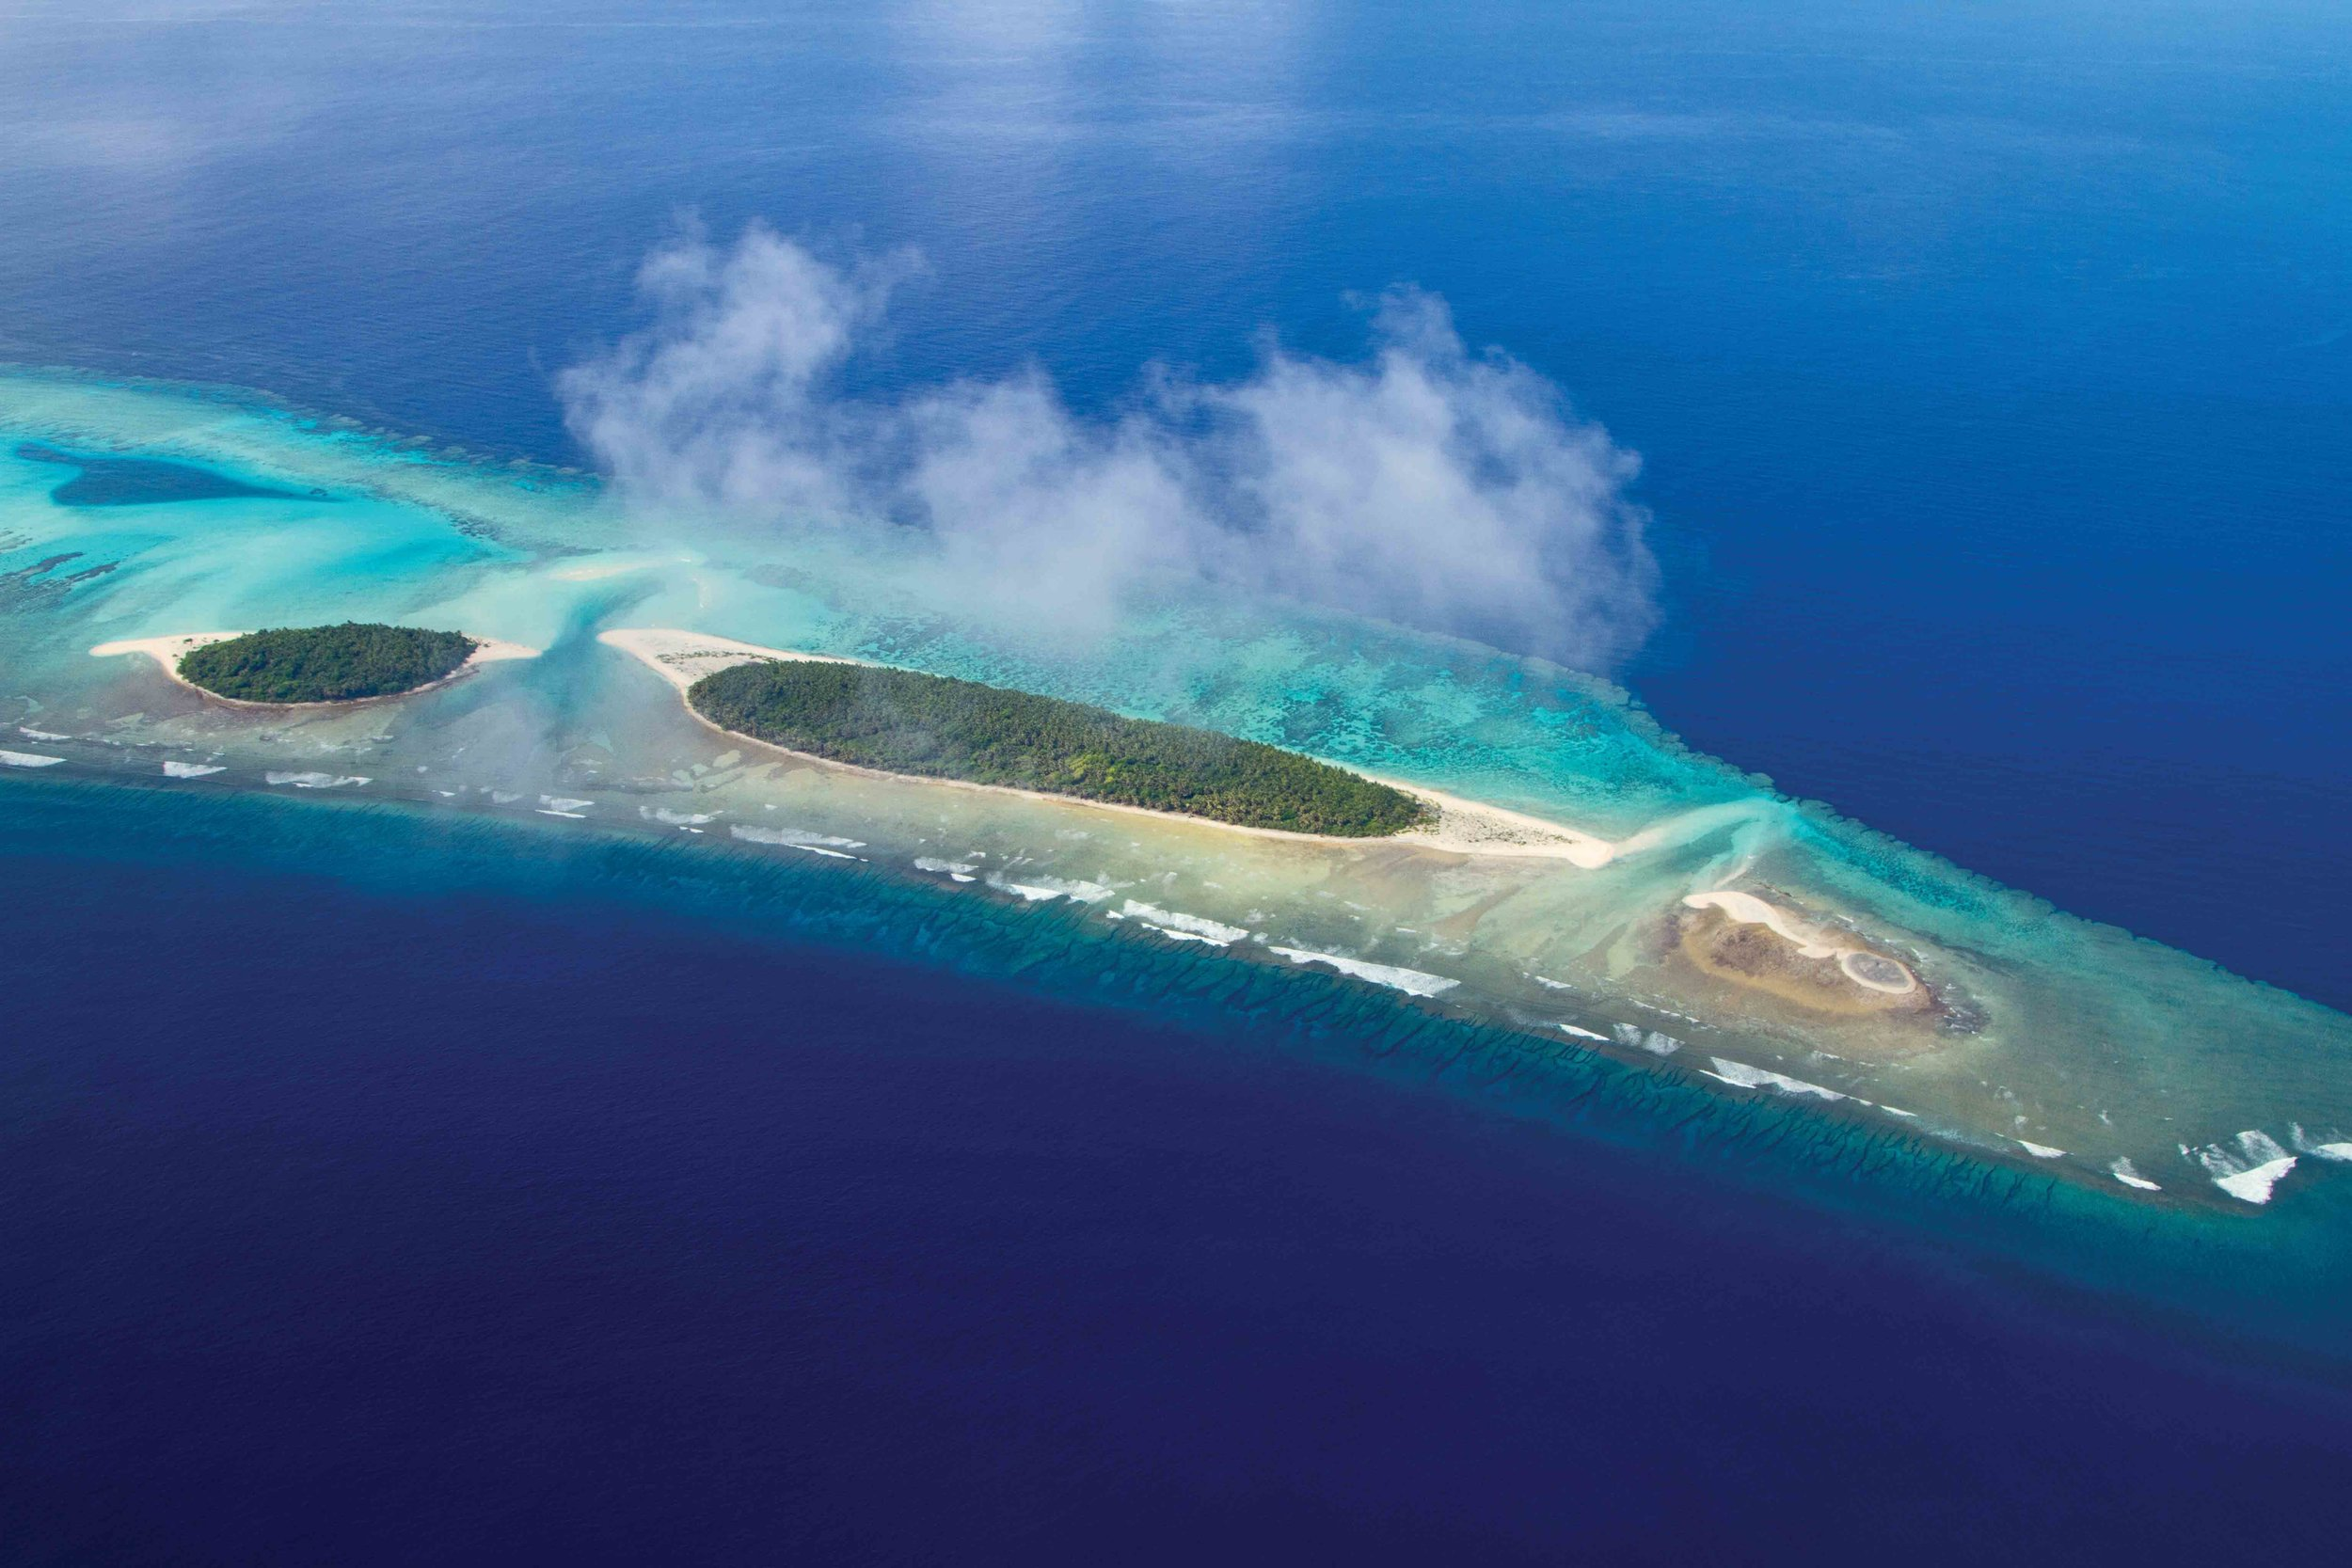 An aerial view of the Crab Islands near Falalop Island in Ulithi Atoll, Federated States of Micronesia, is shown. © Wayne Sentman